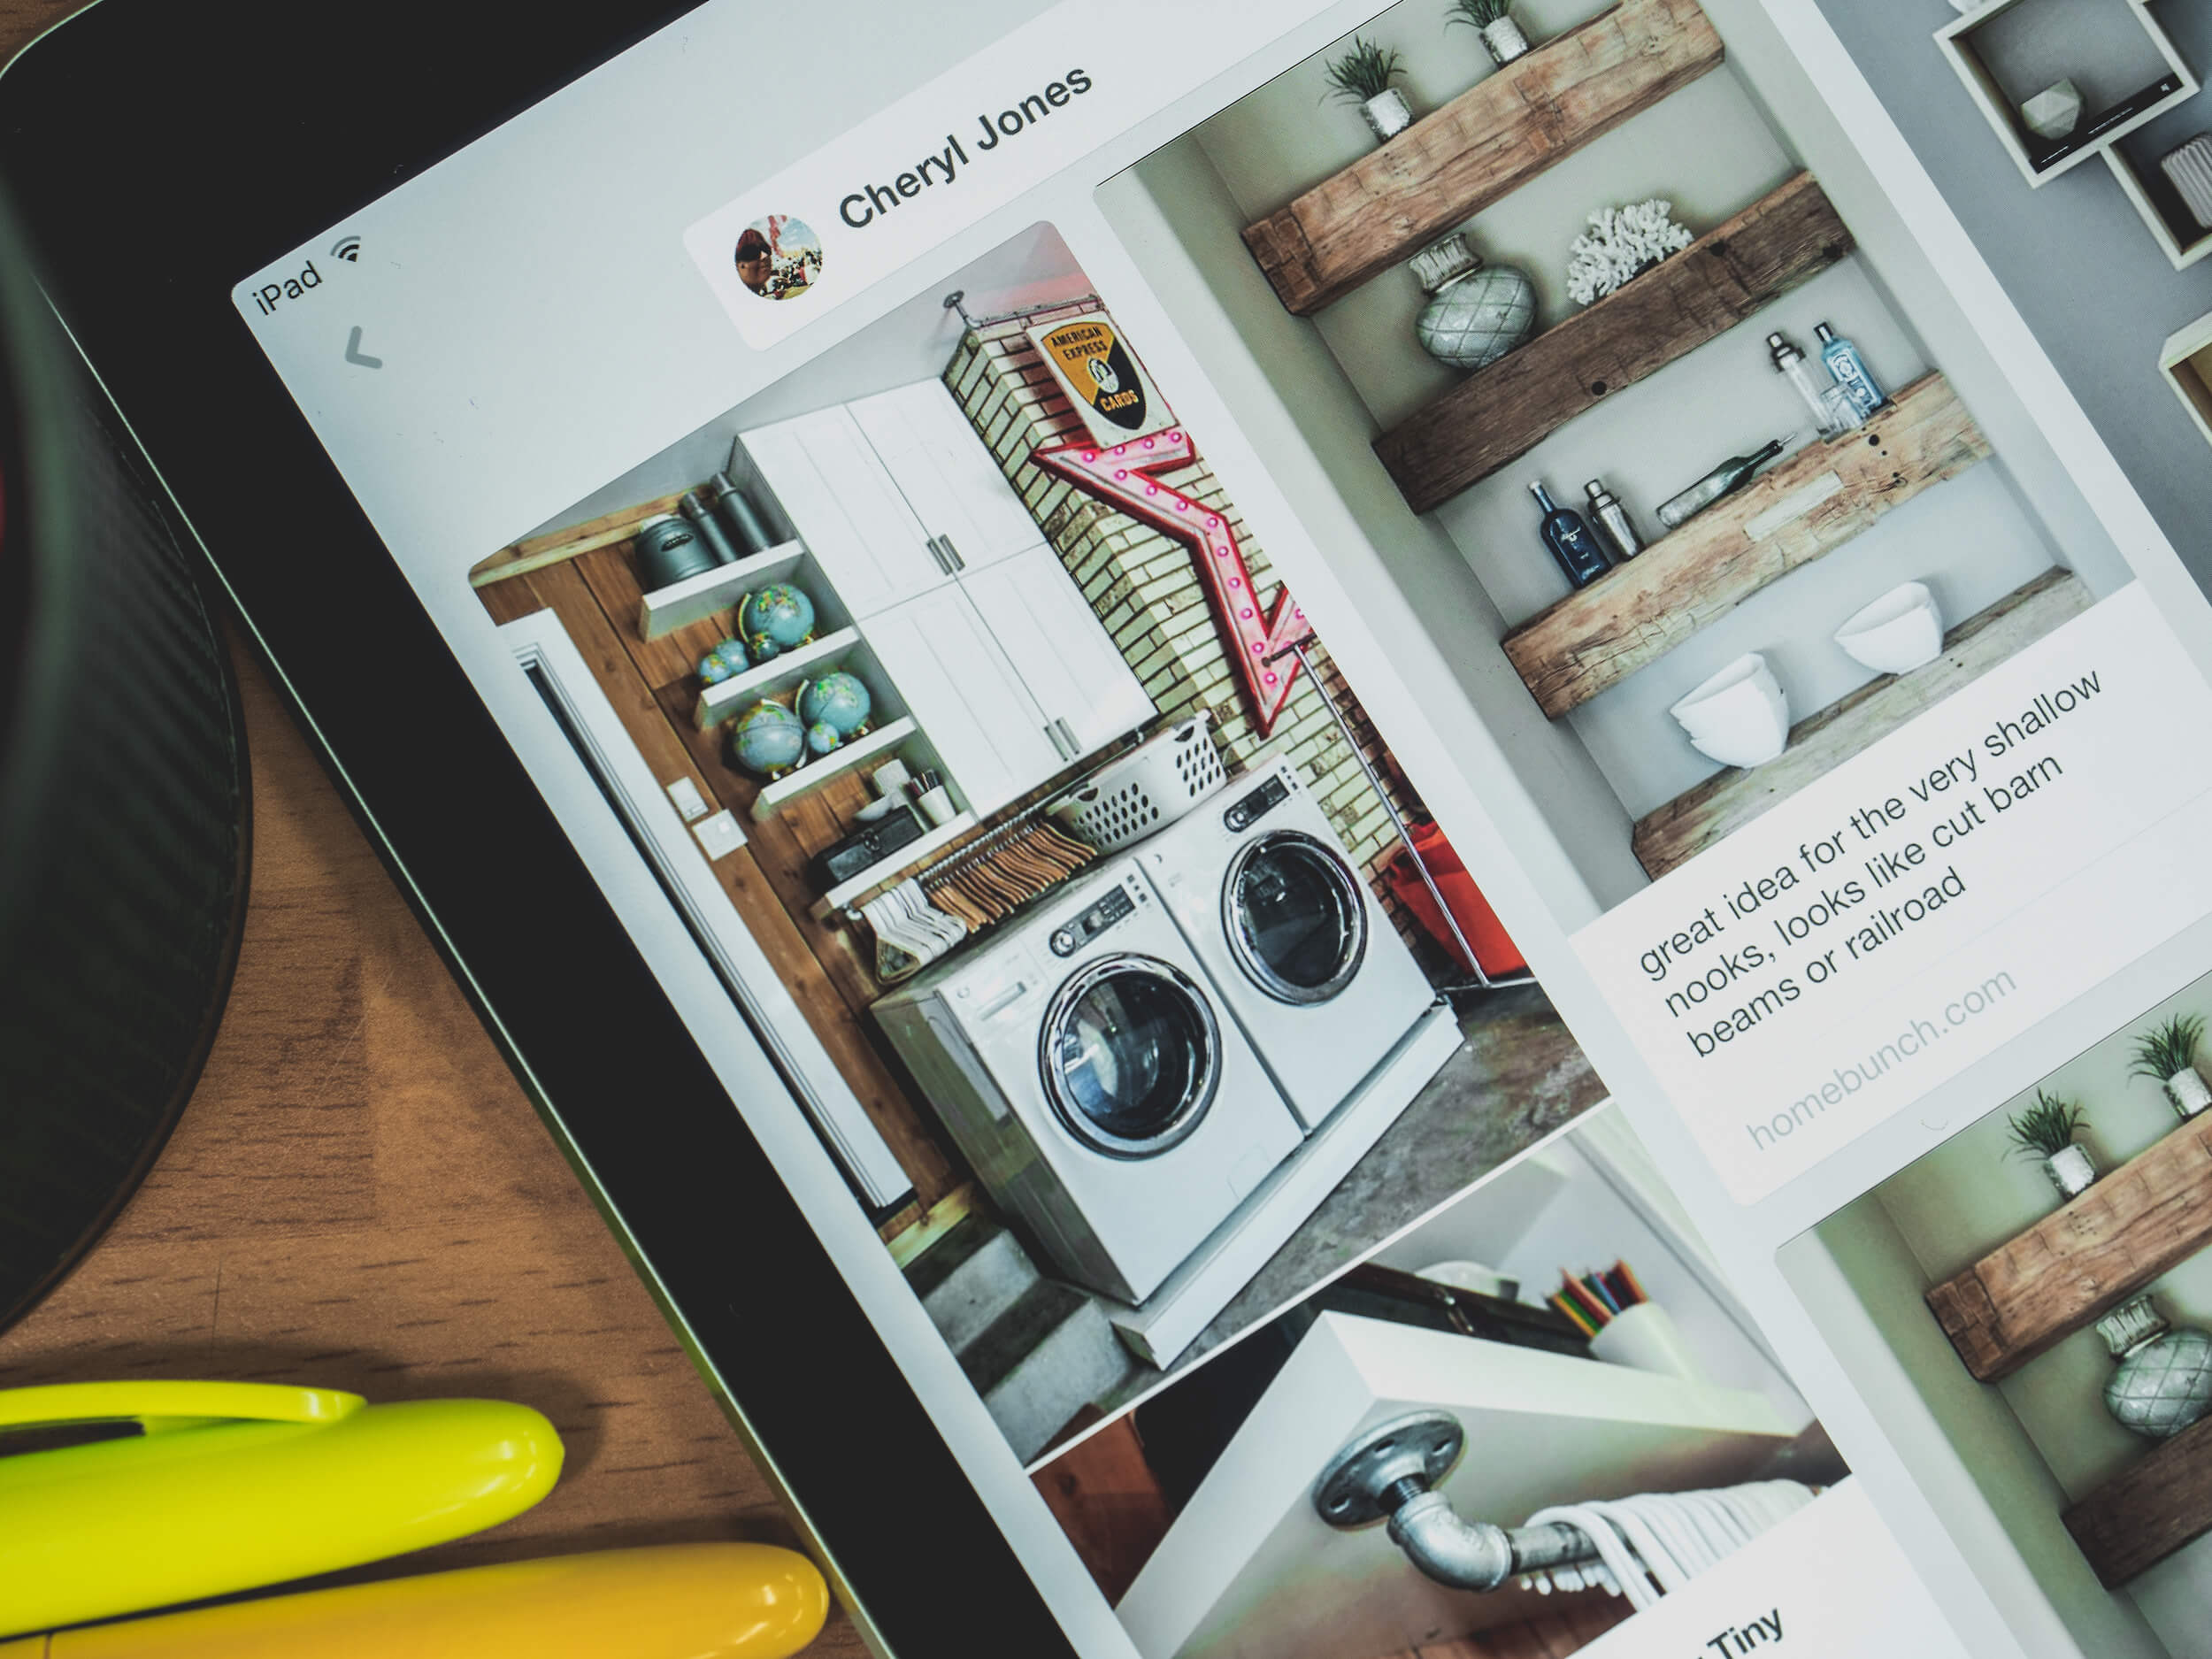 Shoppable images on Pinterest make commerce more accessible